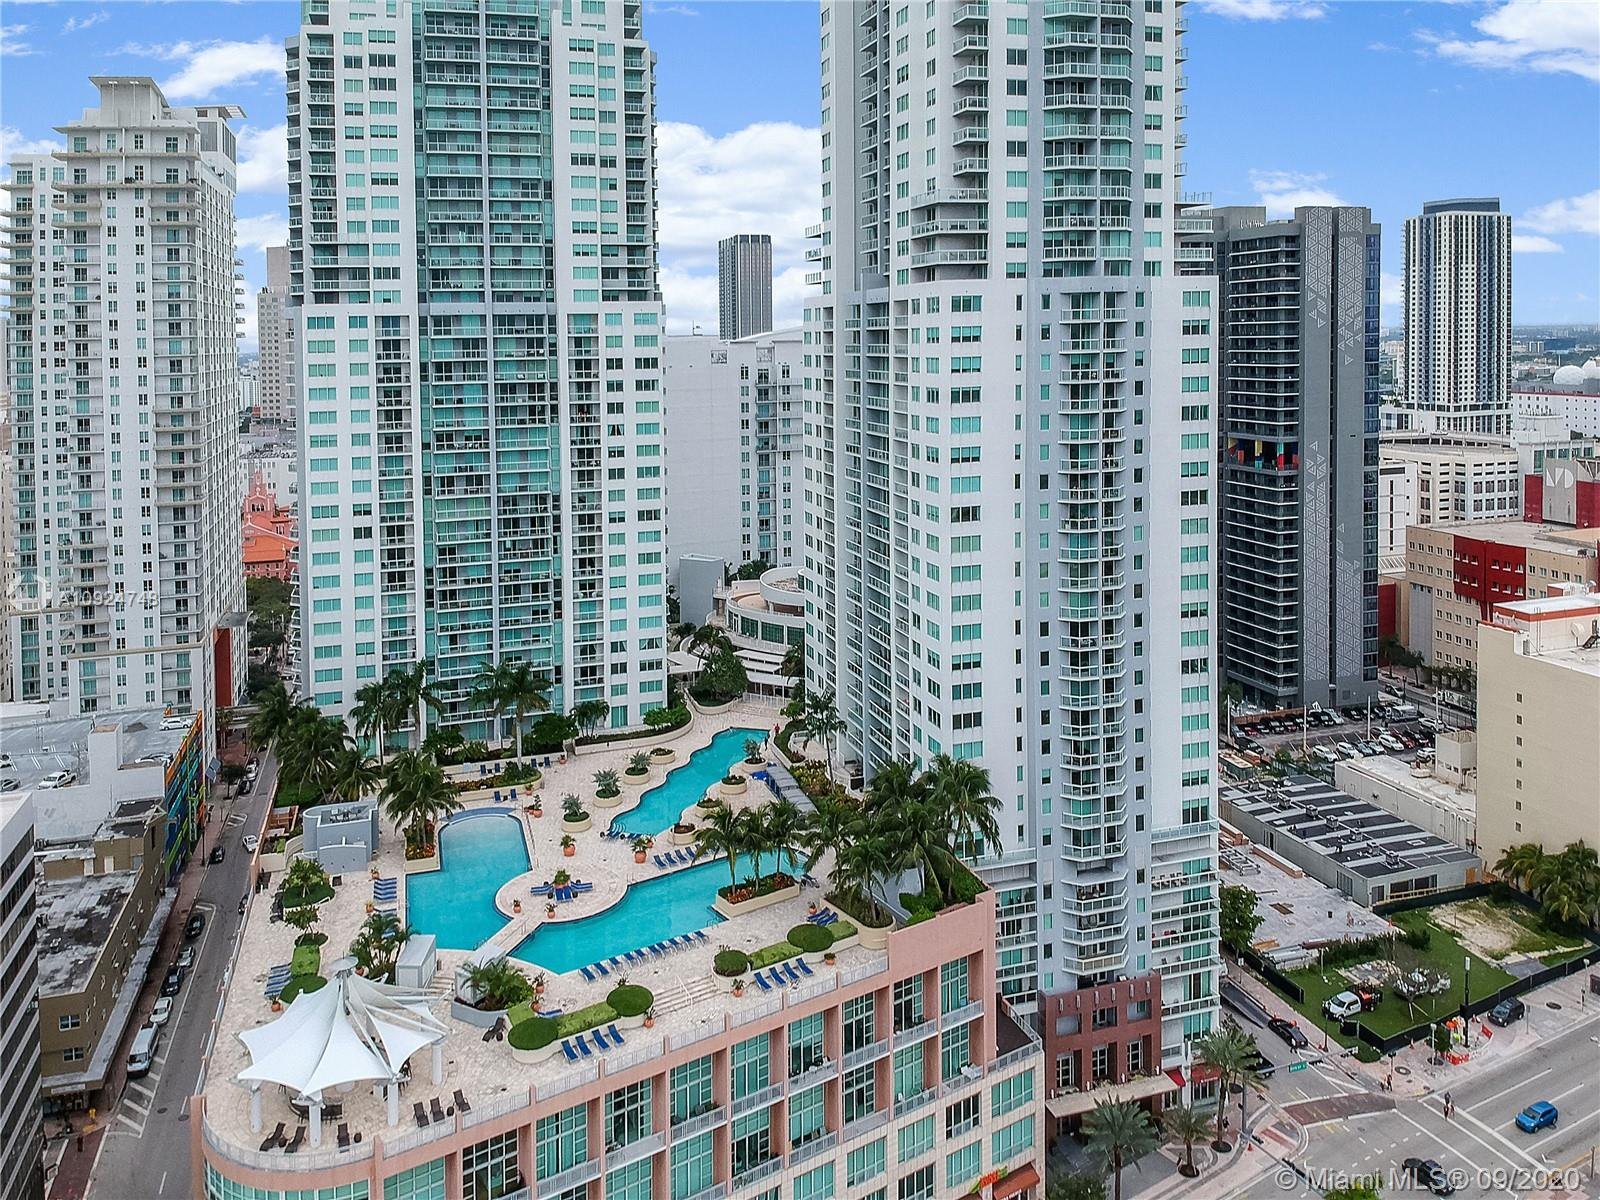 Stunning 2 Bed, 2.5 Ba plus Den (converts to 3rd bedroom) in a high-rise home that entices with open floor plan and panoramic views. Walk into a direct view of the Bayfront Park Amphitheatre with surrounding skyline and the expanse of Biscayne Bay. Fully furnished and impeccably maintained with high ceilings, stone countertops, stainless steel appliances, and luxurious finishes. Best view from highly desired Vizcayne North Tower. Building includes spa, health club, sauna, clubhouse, movie theater, and 4 pools. In close proximity to the best of what Miami has to offer: American Airlines Arena, Bayside Marketplace, Adrianne Arsht Center, PAMM Museum of Art, Frost Science Museum, and Brickell Financial District. Experience the residential sophistication and tropical beauty of downtown Miami.